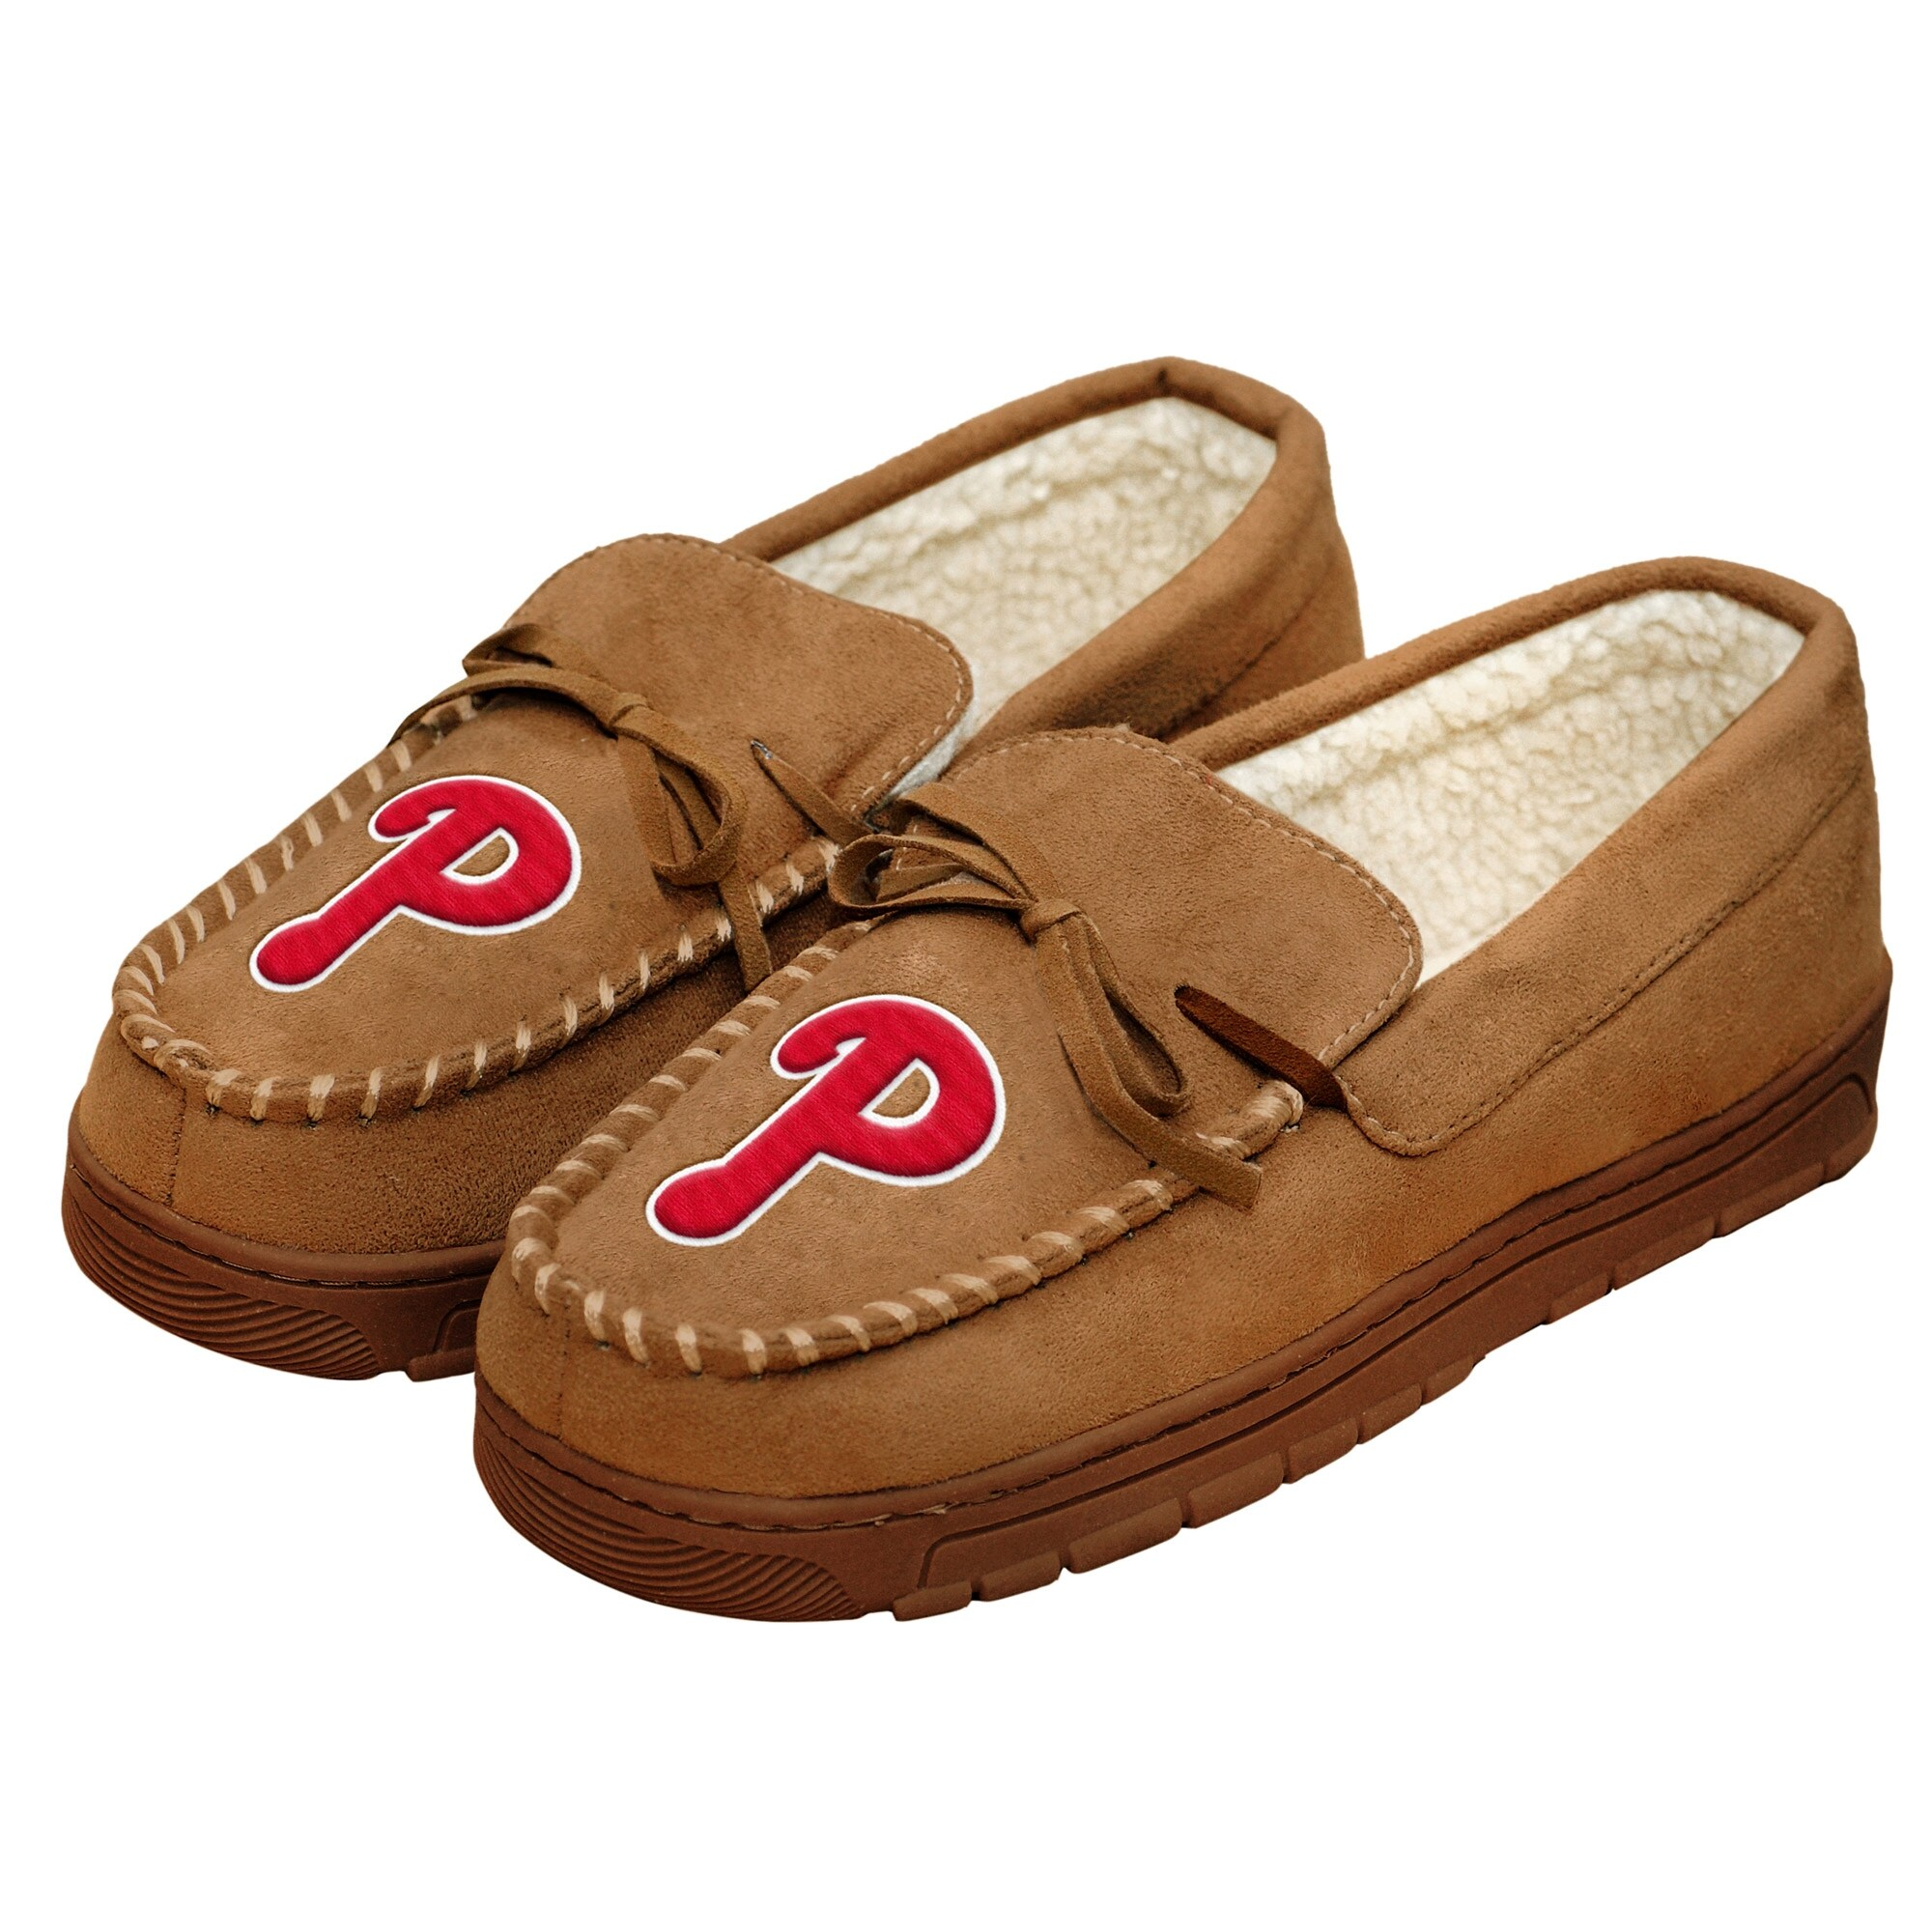 Philadelphia Phillies Moccasin Slippers